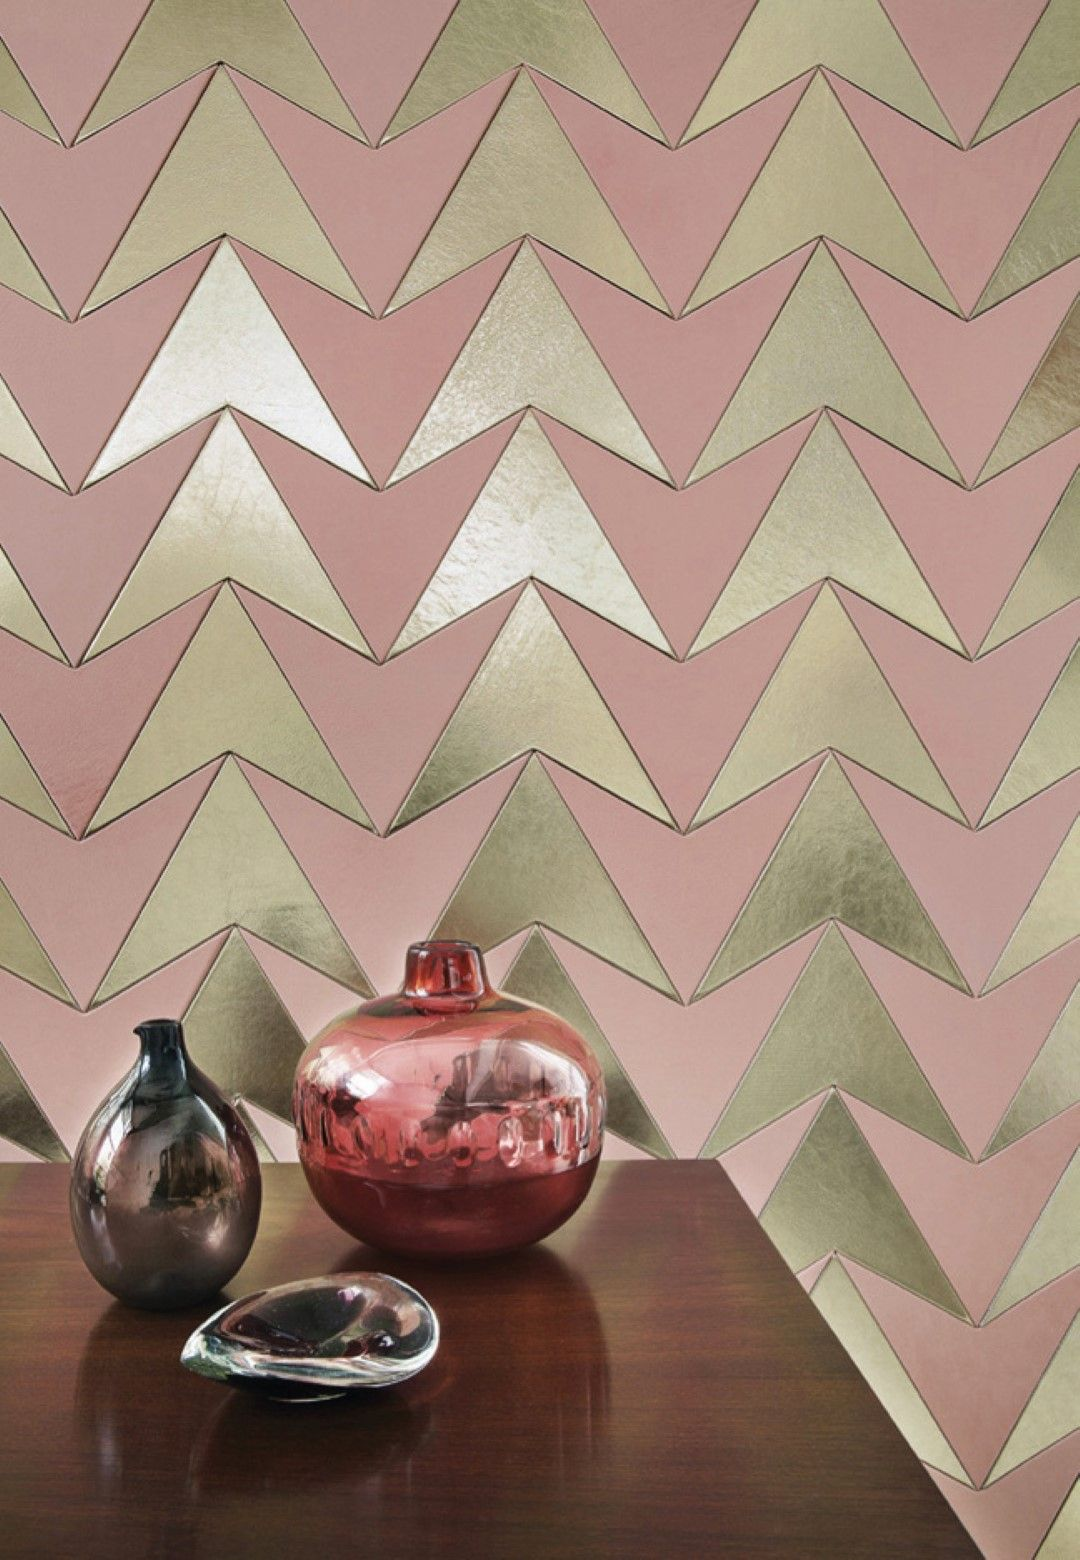 15 Chic Geometric Pieces For Every Room